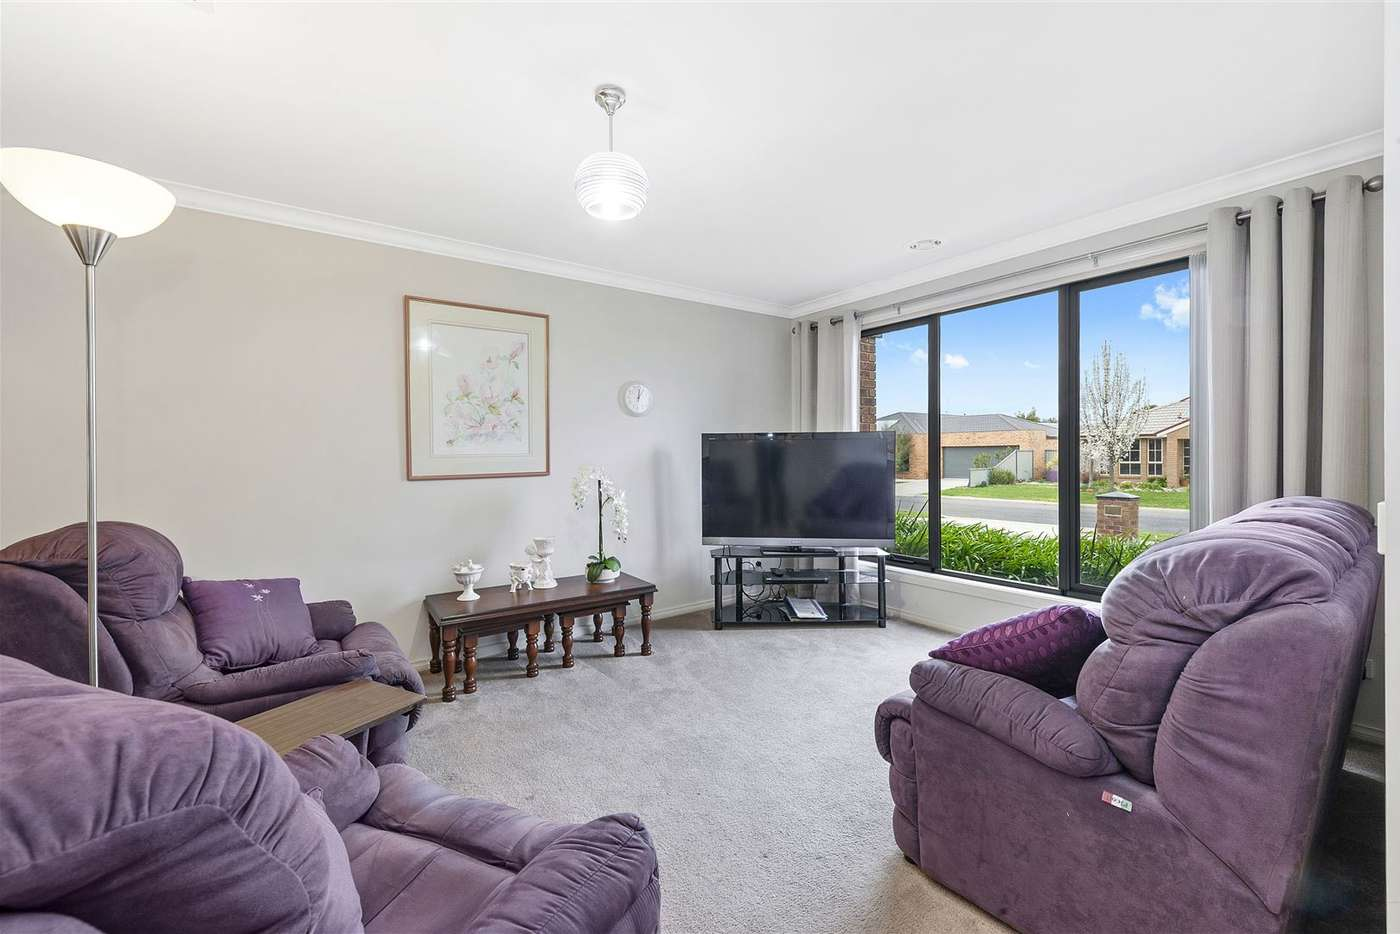 Sixth view of Homely house listing, 12 Nimble Drive, Delacombe VIC 3356